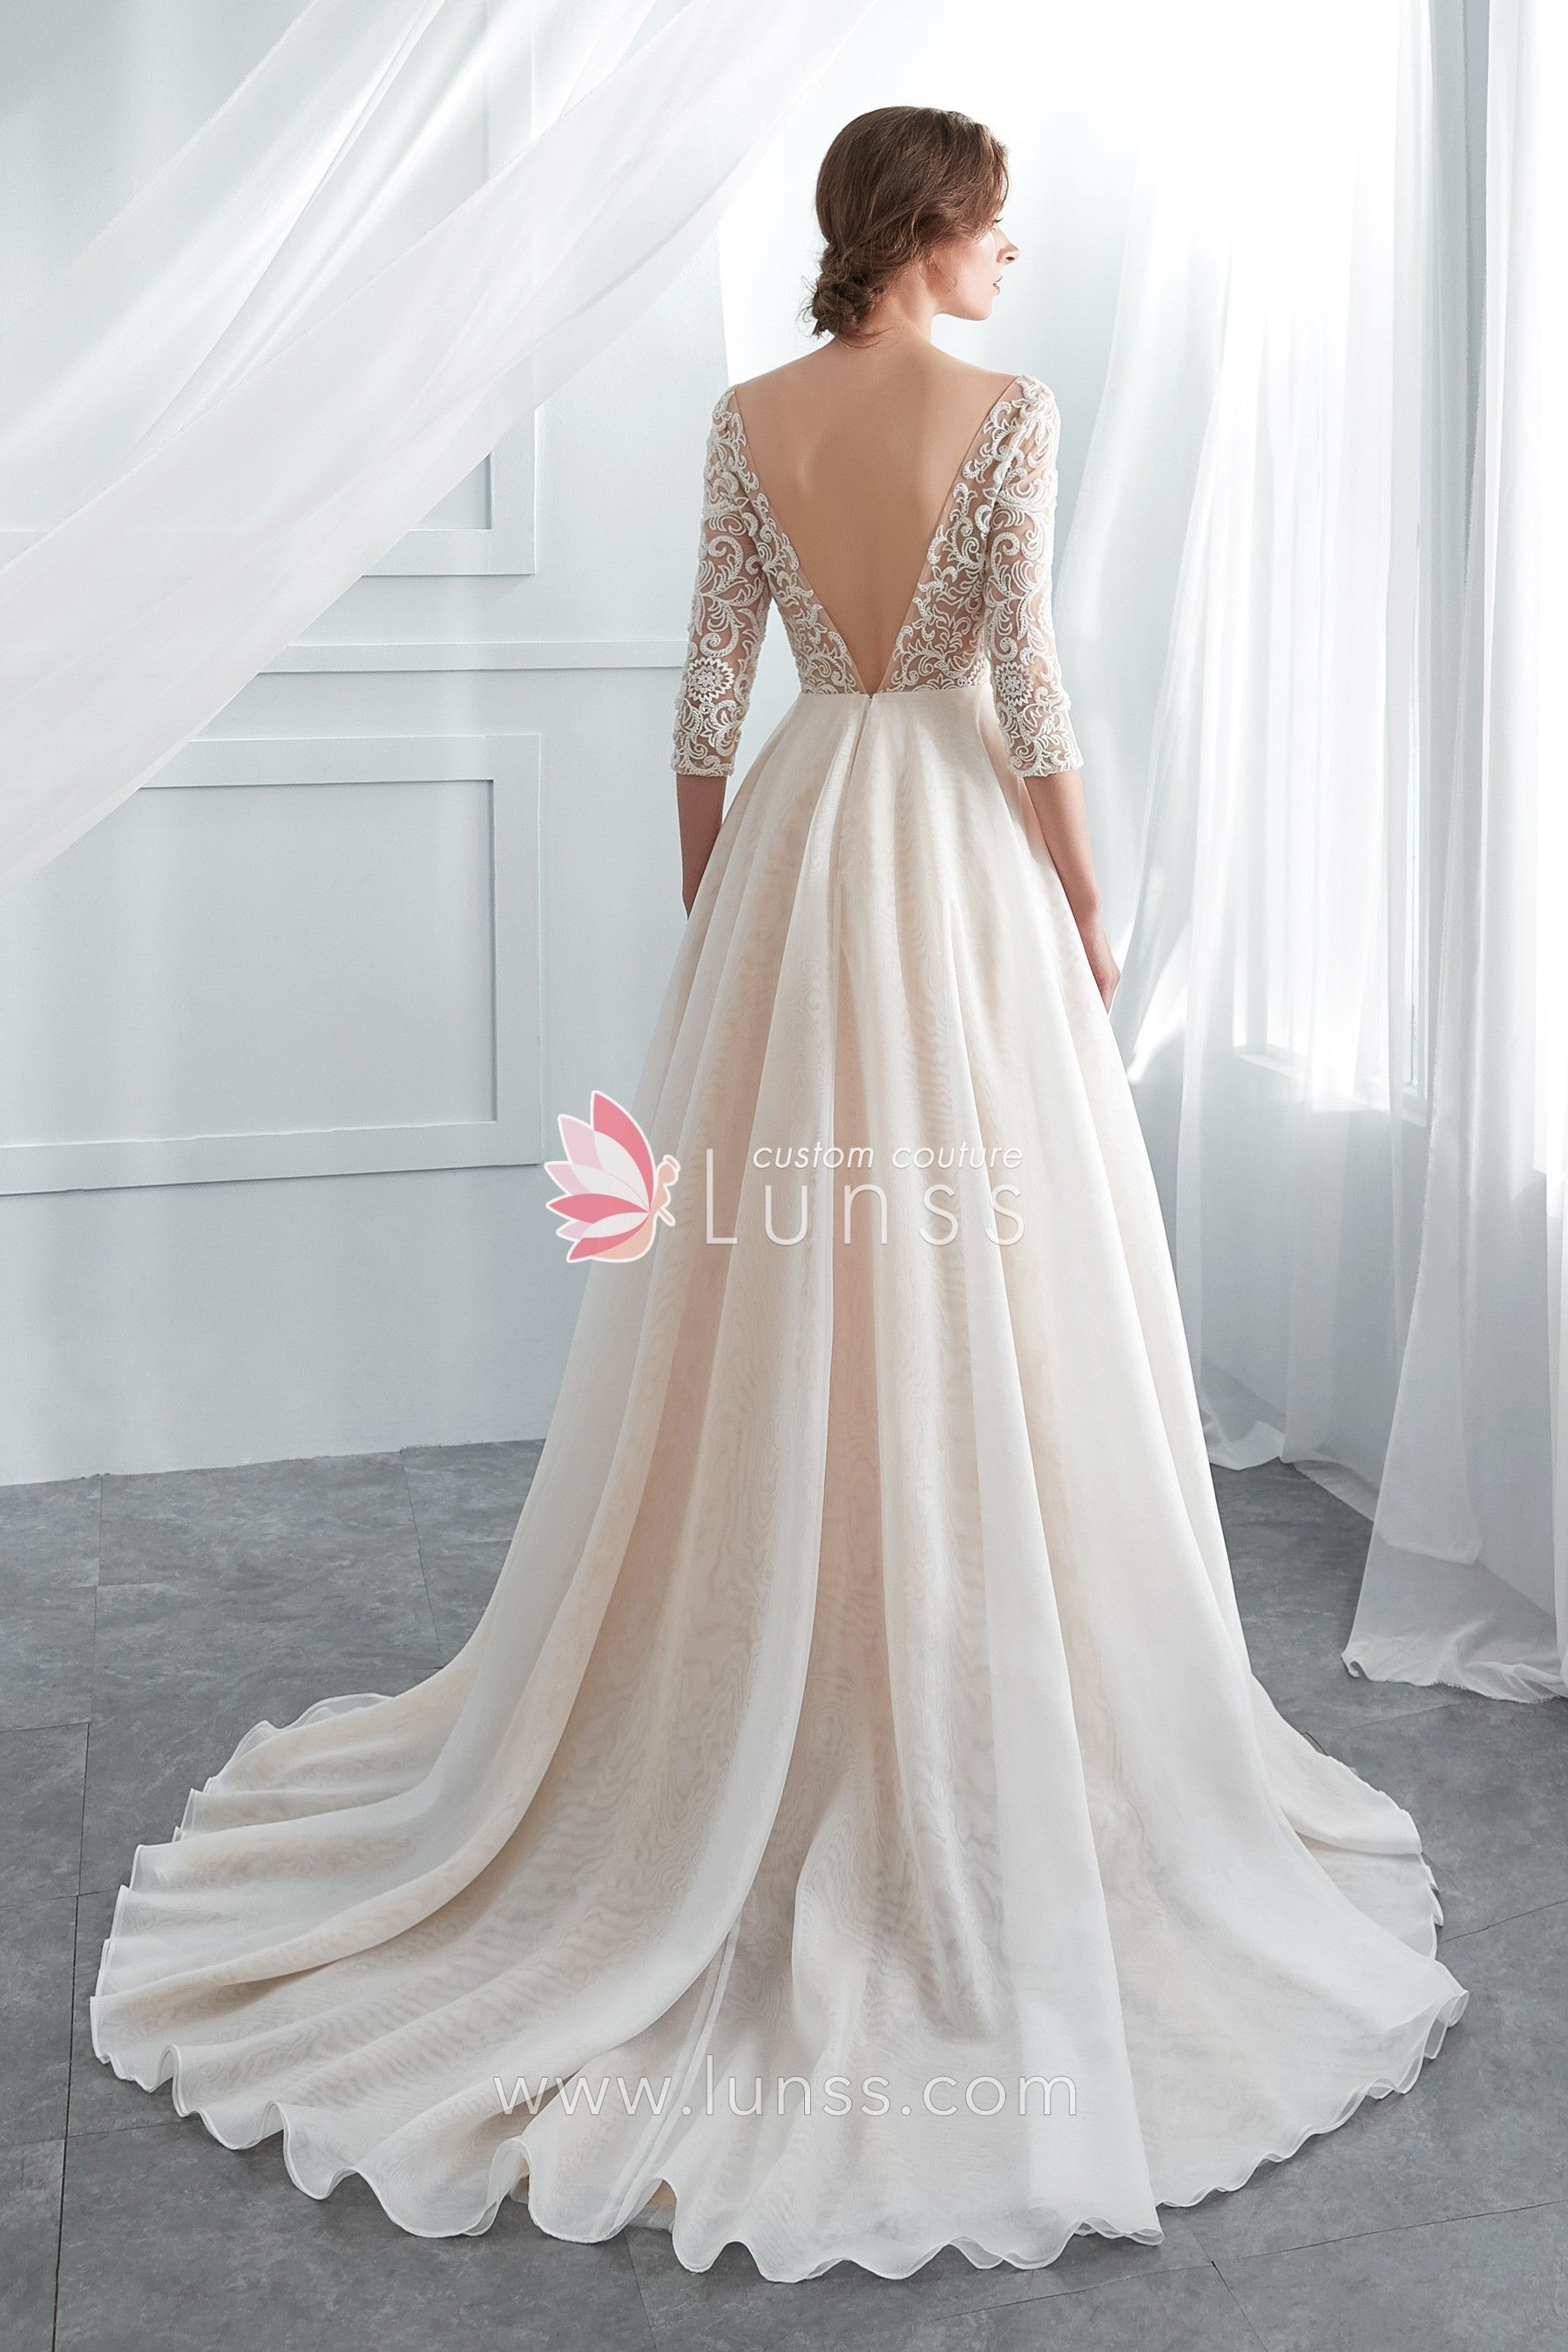 Champagne Beaded Lace Organza Wedding Gown with 34 Sleeve  b59d8d0db